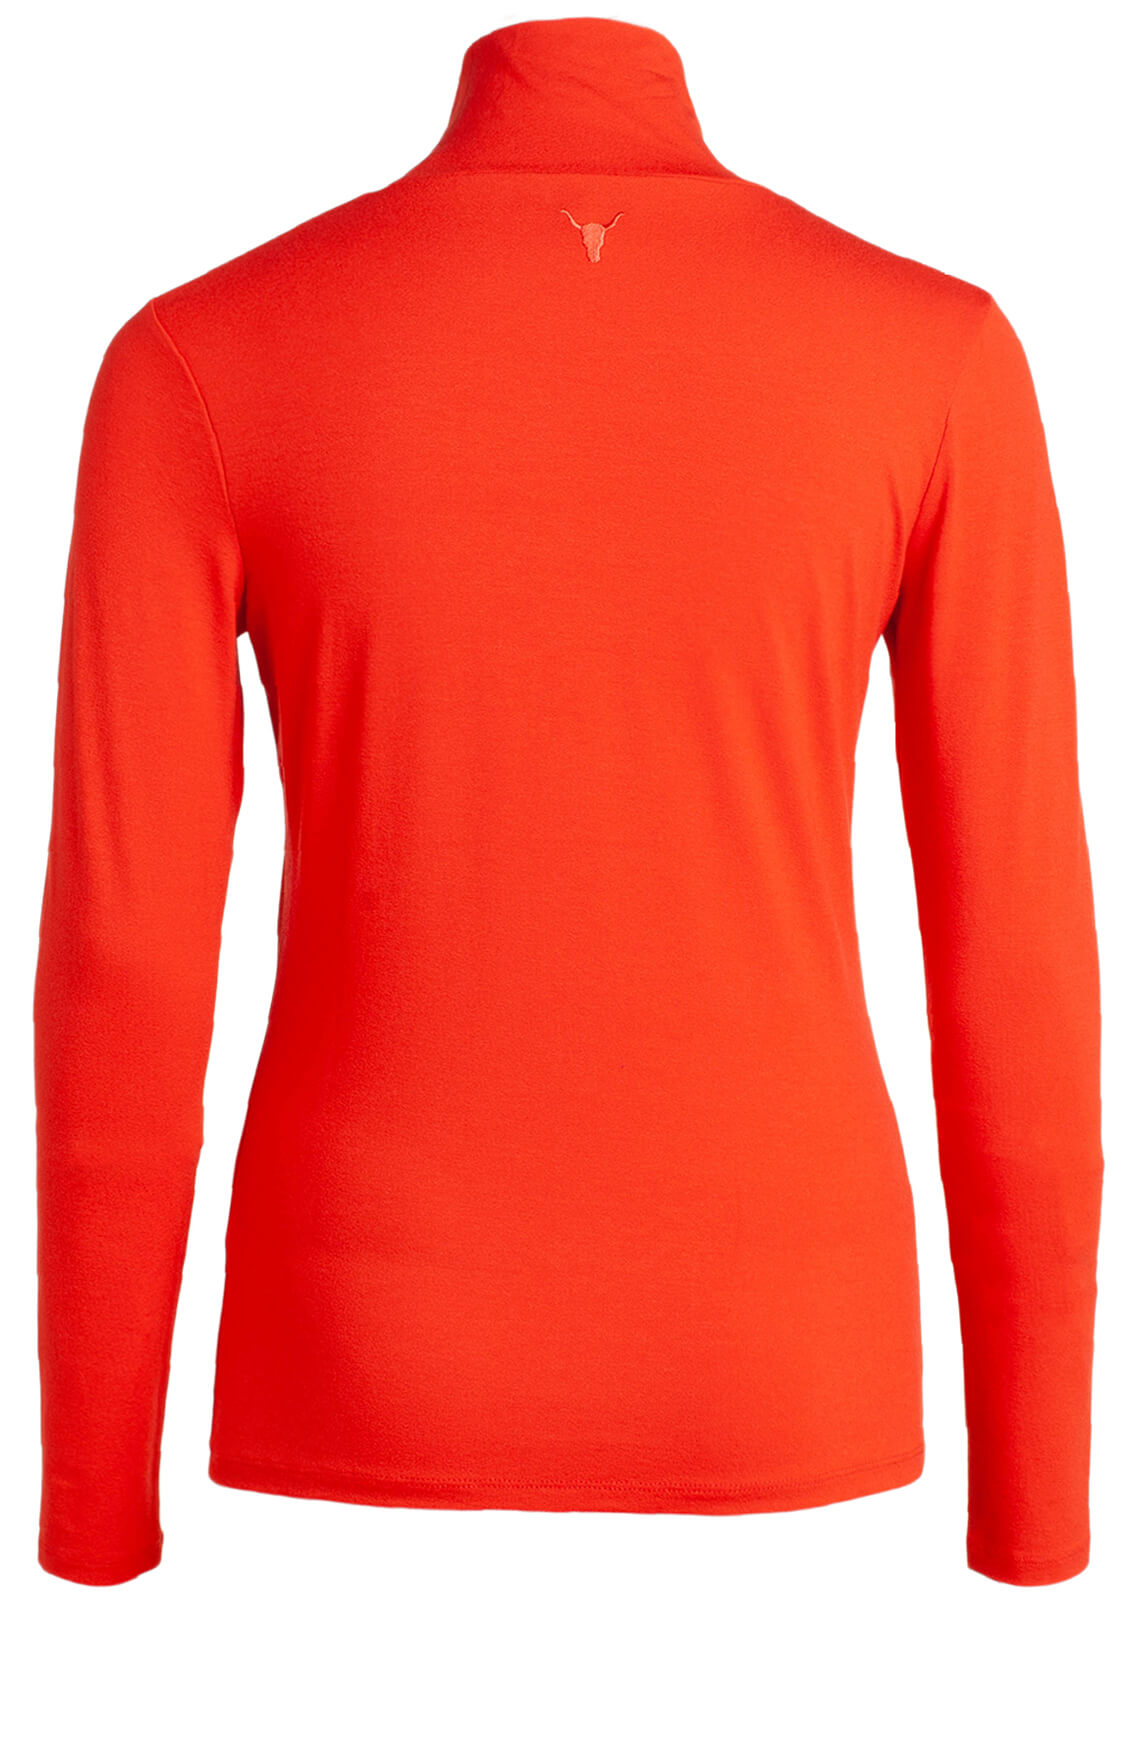 Alix The Label Dames Stretch pullover Rood